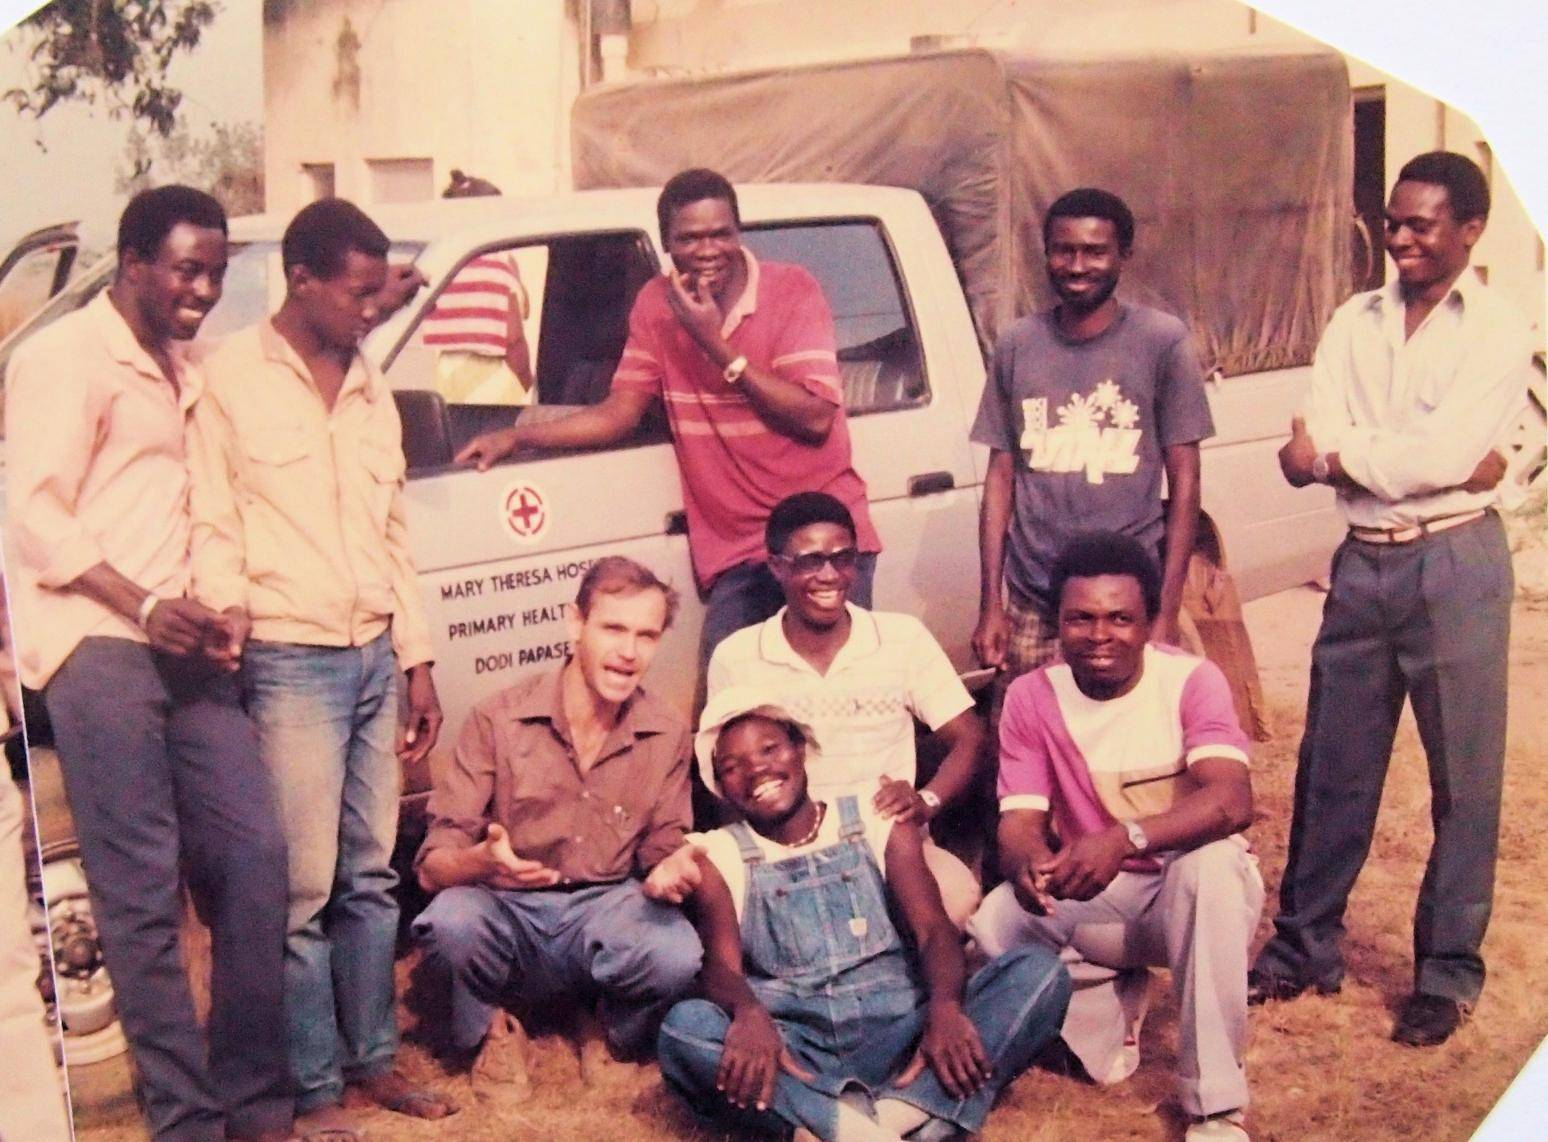 Good old days in Ghana: 1985. The HES team at the Mary Theresa Hospital in Dodi Papase where we just did install a major electrical supply network.